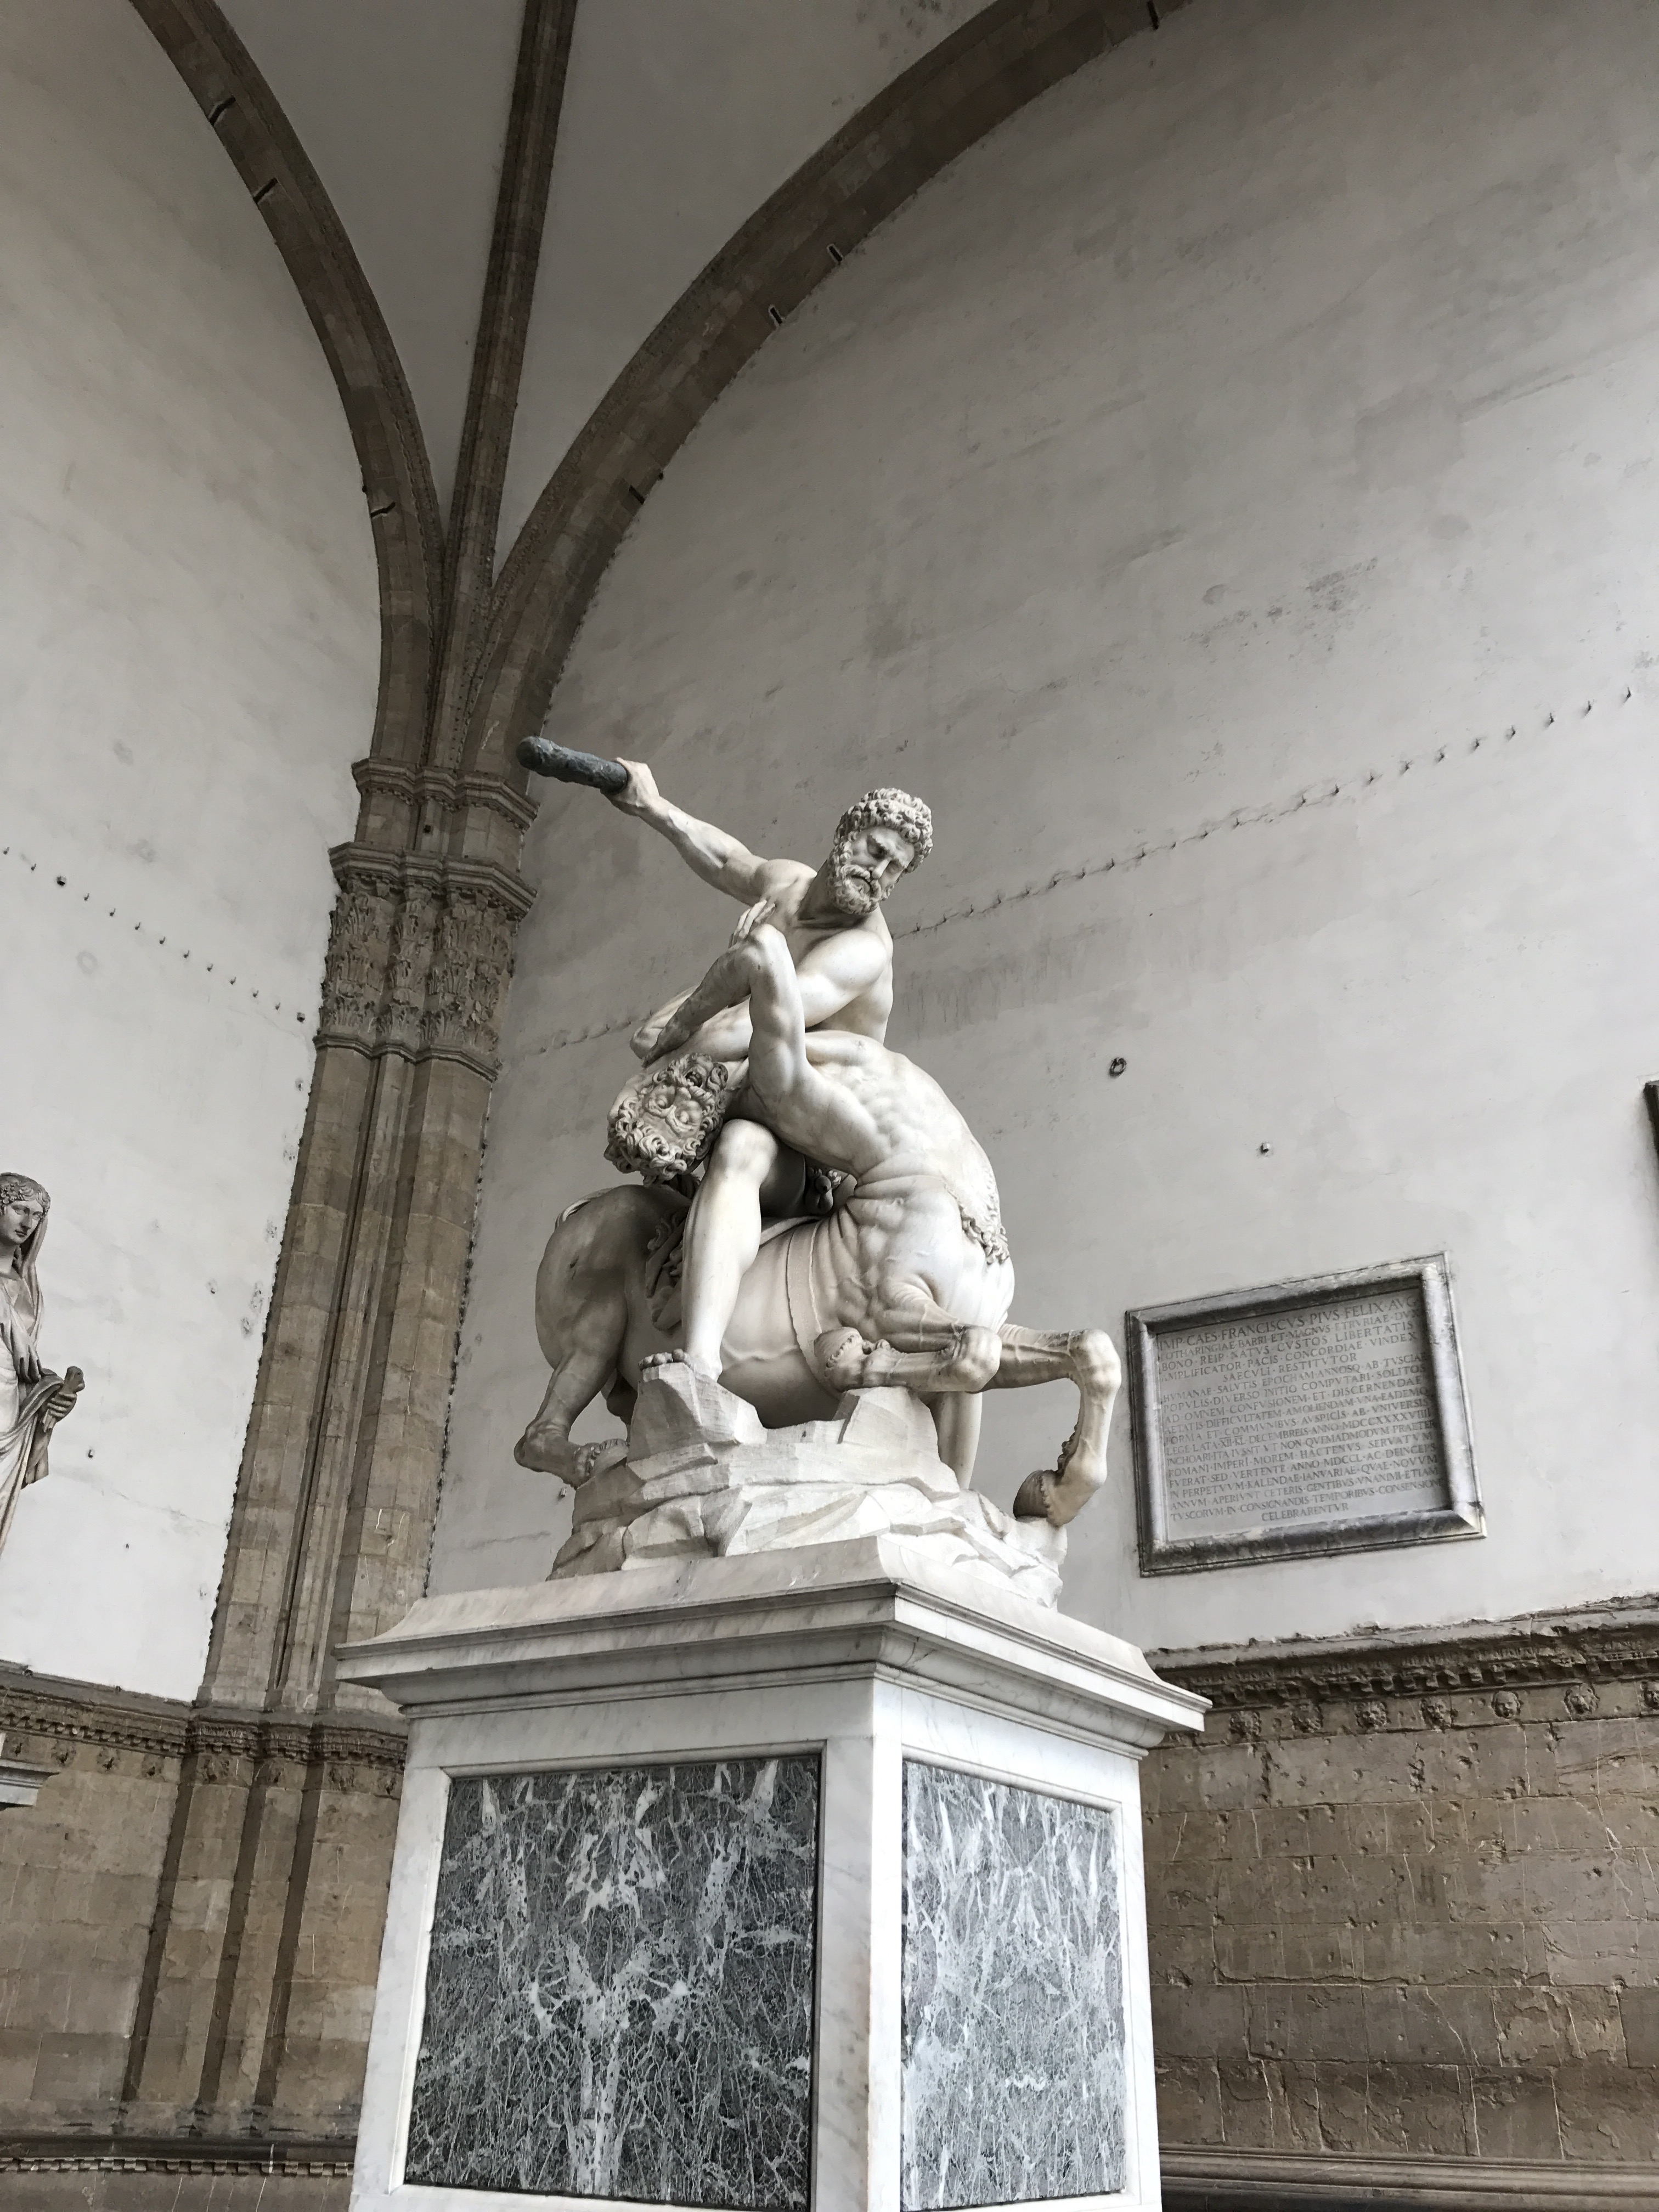 3 Days In Florence - Florence Italy - Planning a trip to Italy - Italy Itinerary - Florence - Tuscany - What to do in Florence - What to do in Italy - Where to go in Florence - Climbing the Duomo - Seeing The David - Best Tips for Florence Italy Travel - Communikait by Kait Hanson